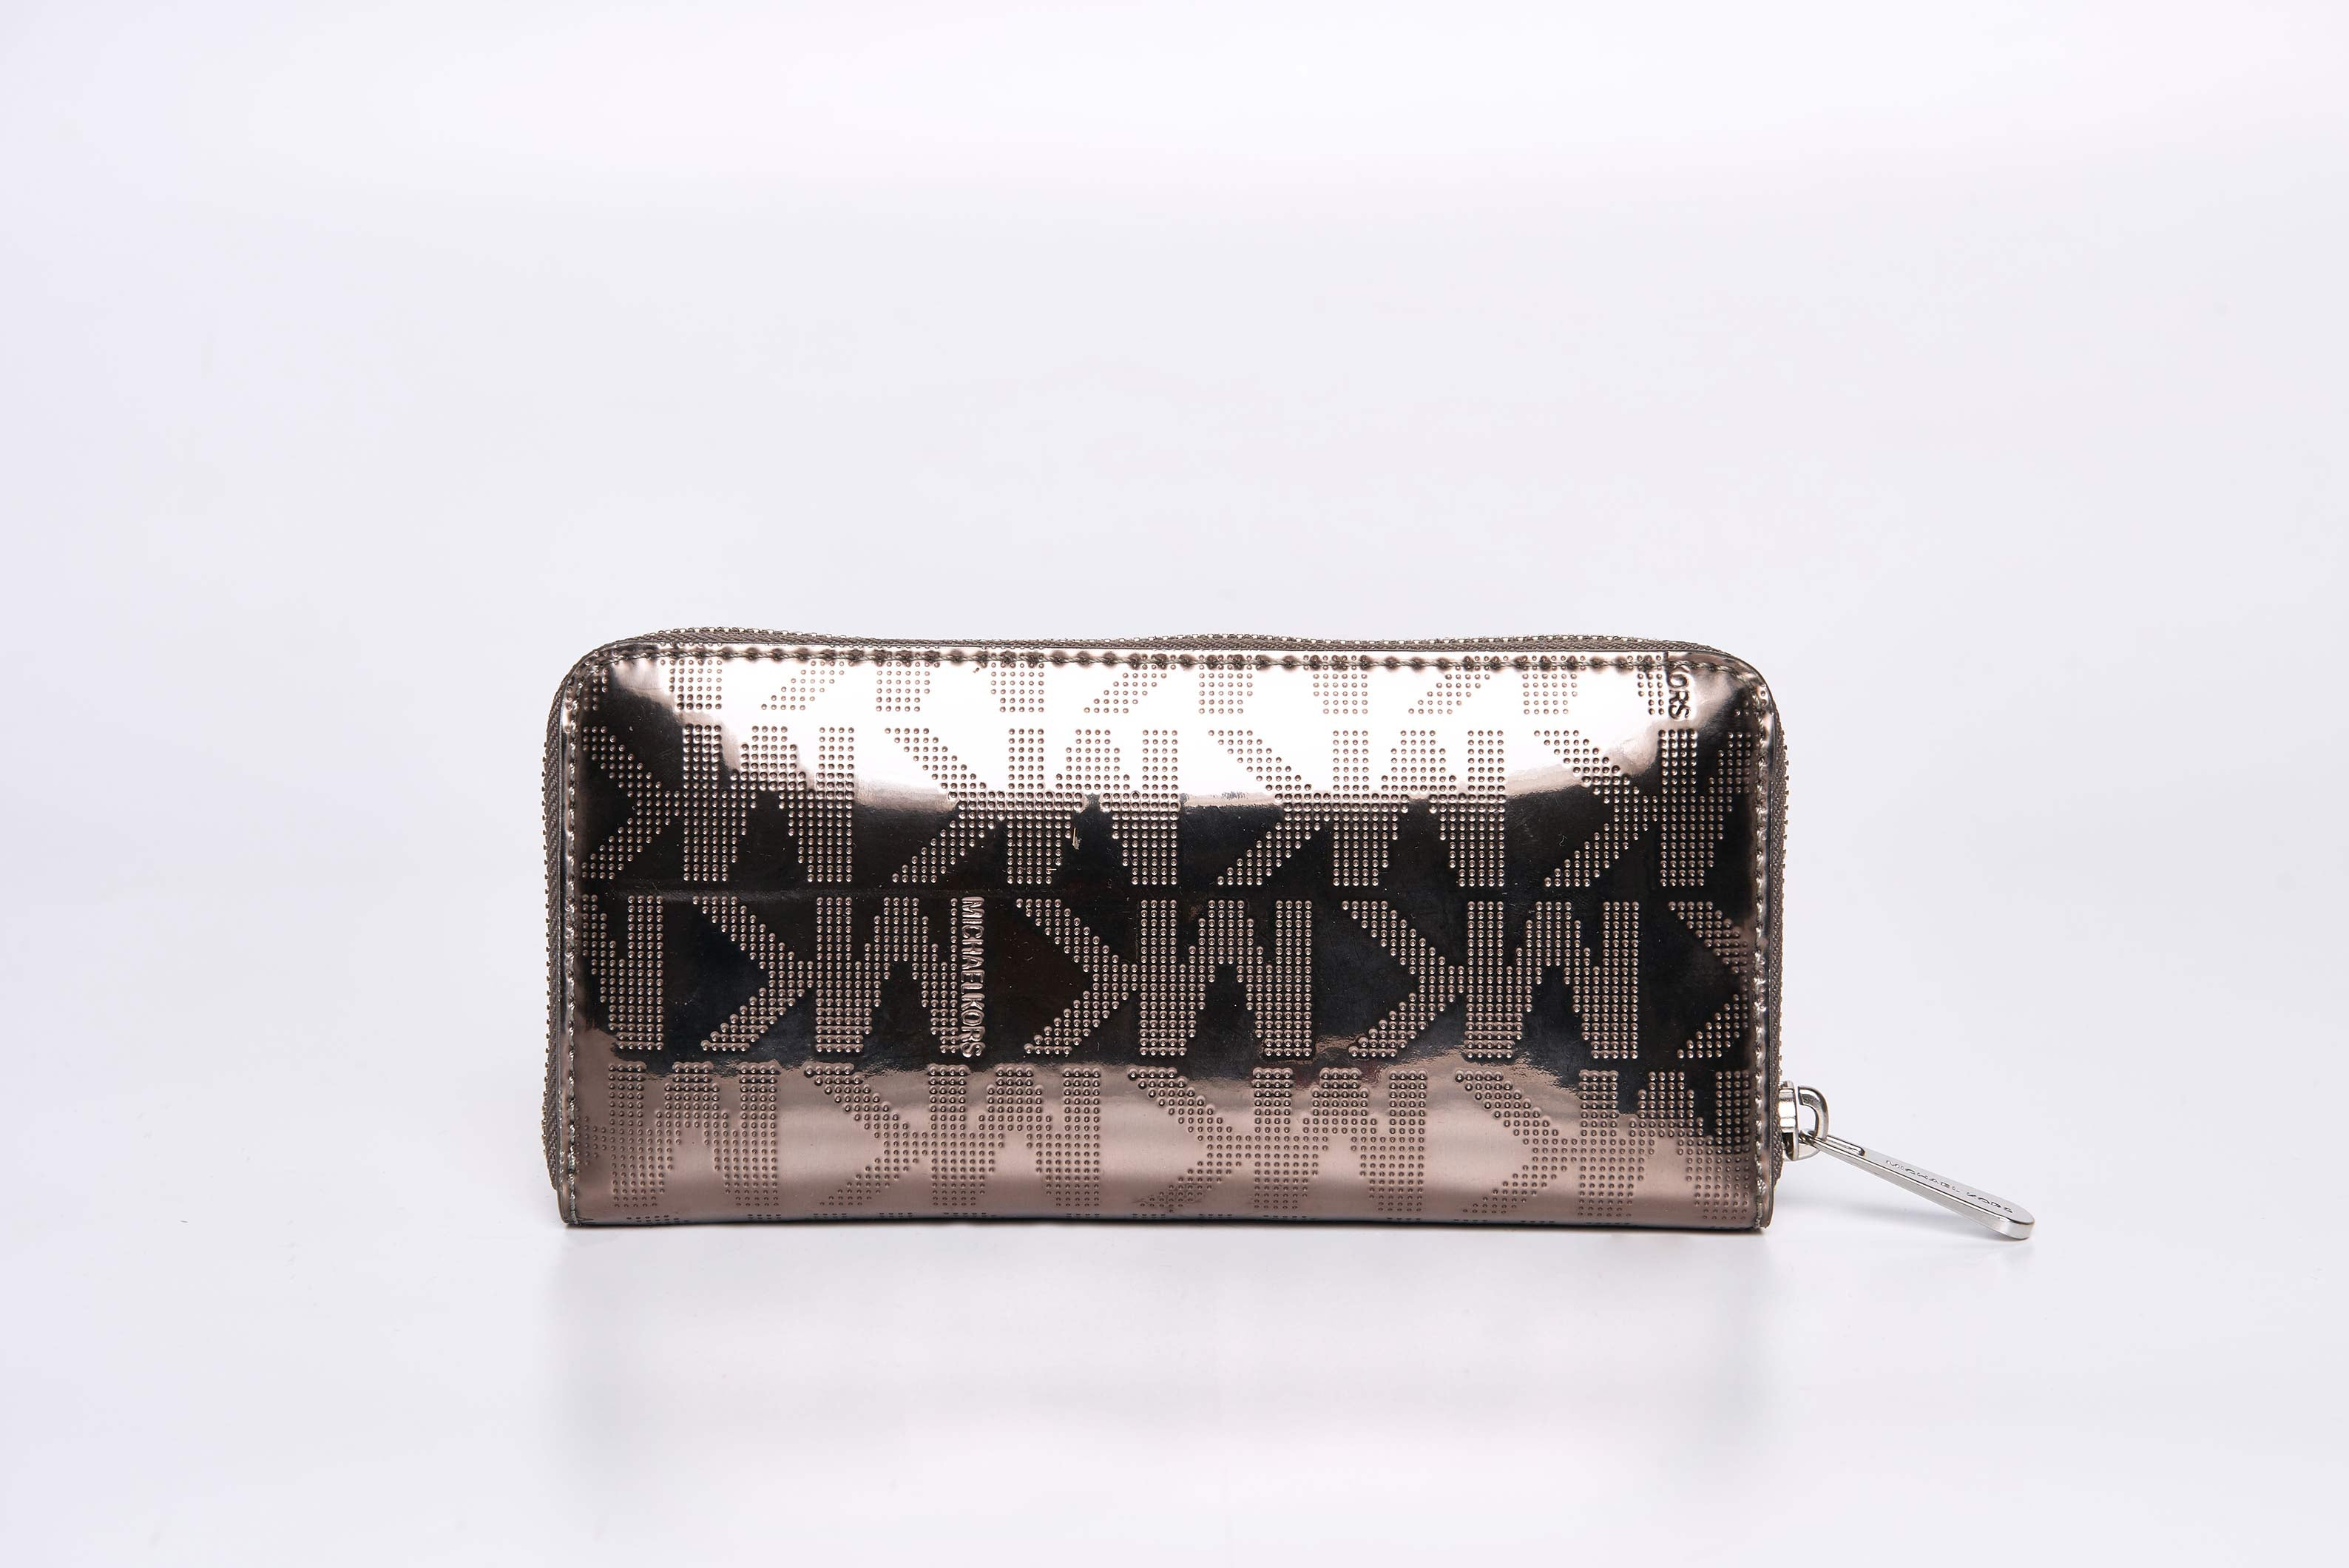 Michael Kors Silver Metallic Wallet